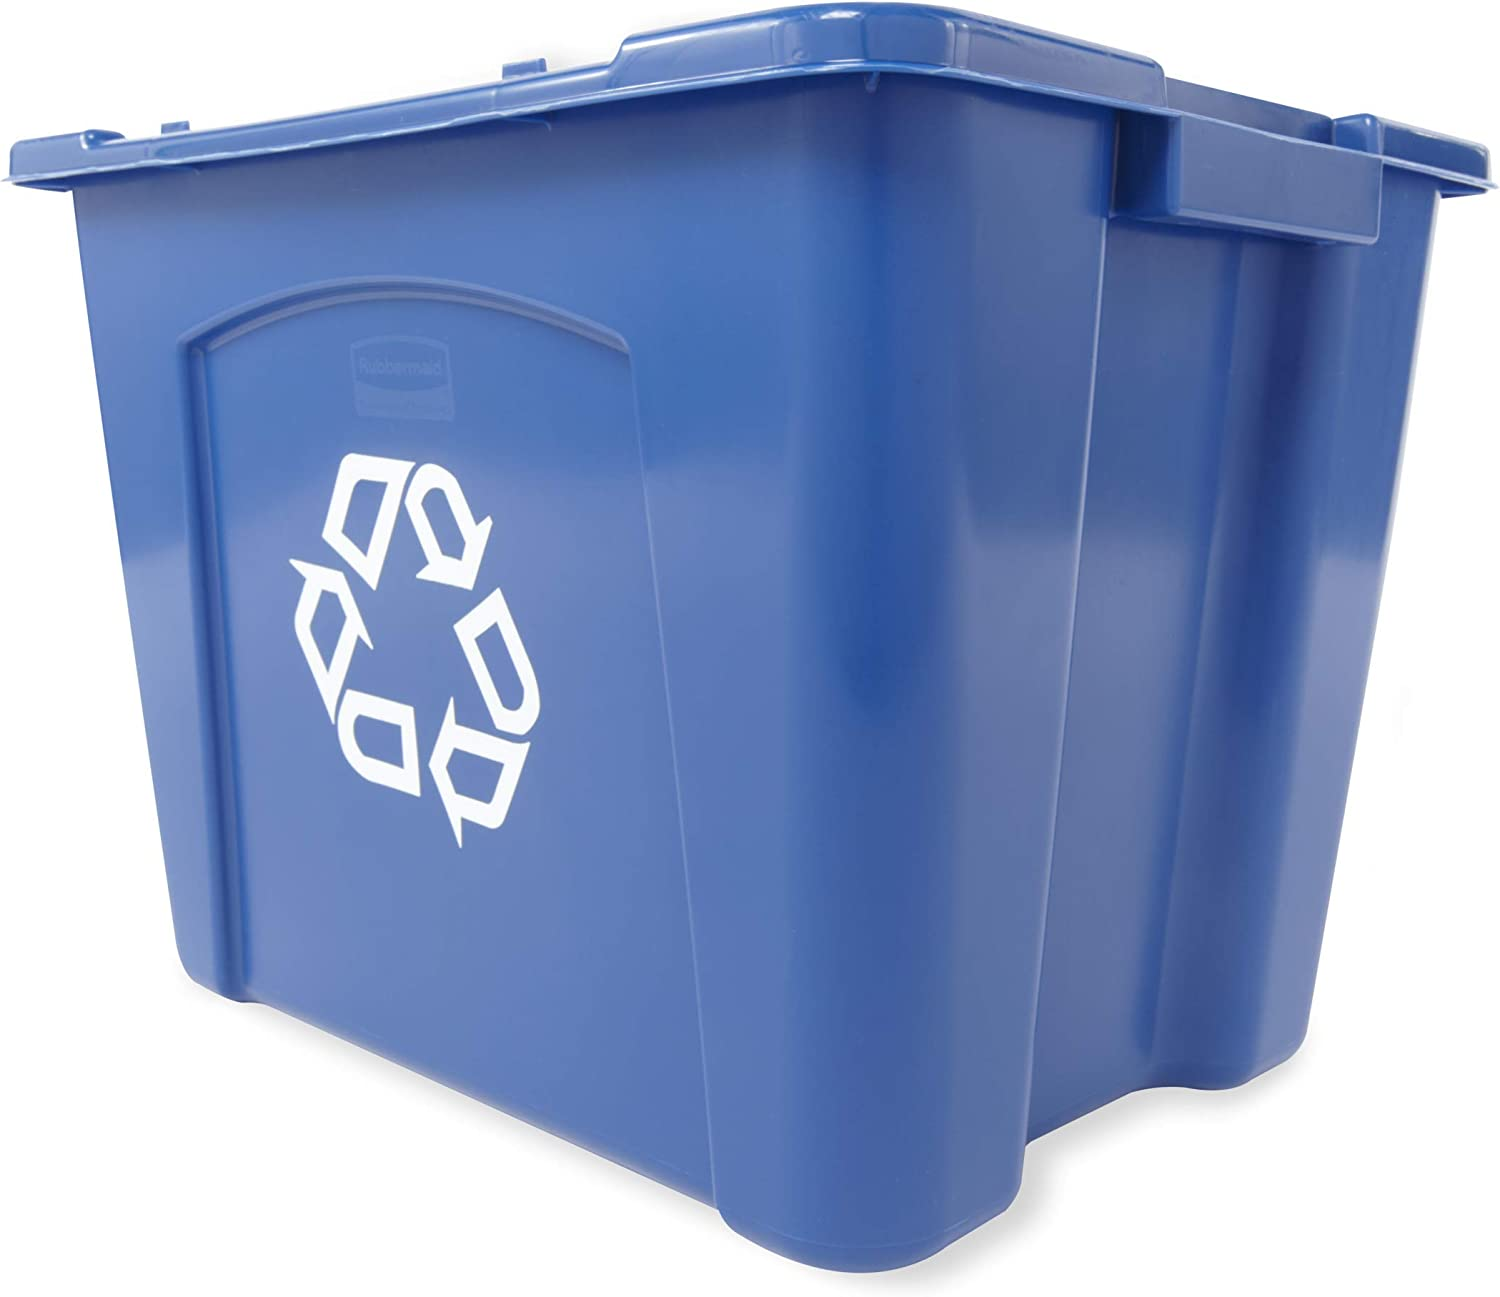 Rubbermaid Commercial Stackable Recycling Bin 14 Gallon Blue Fg571473blue In Home Recycling Bins Amazon Com Computers Accessories